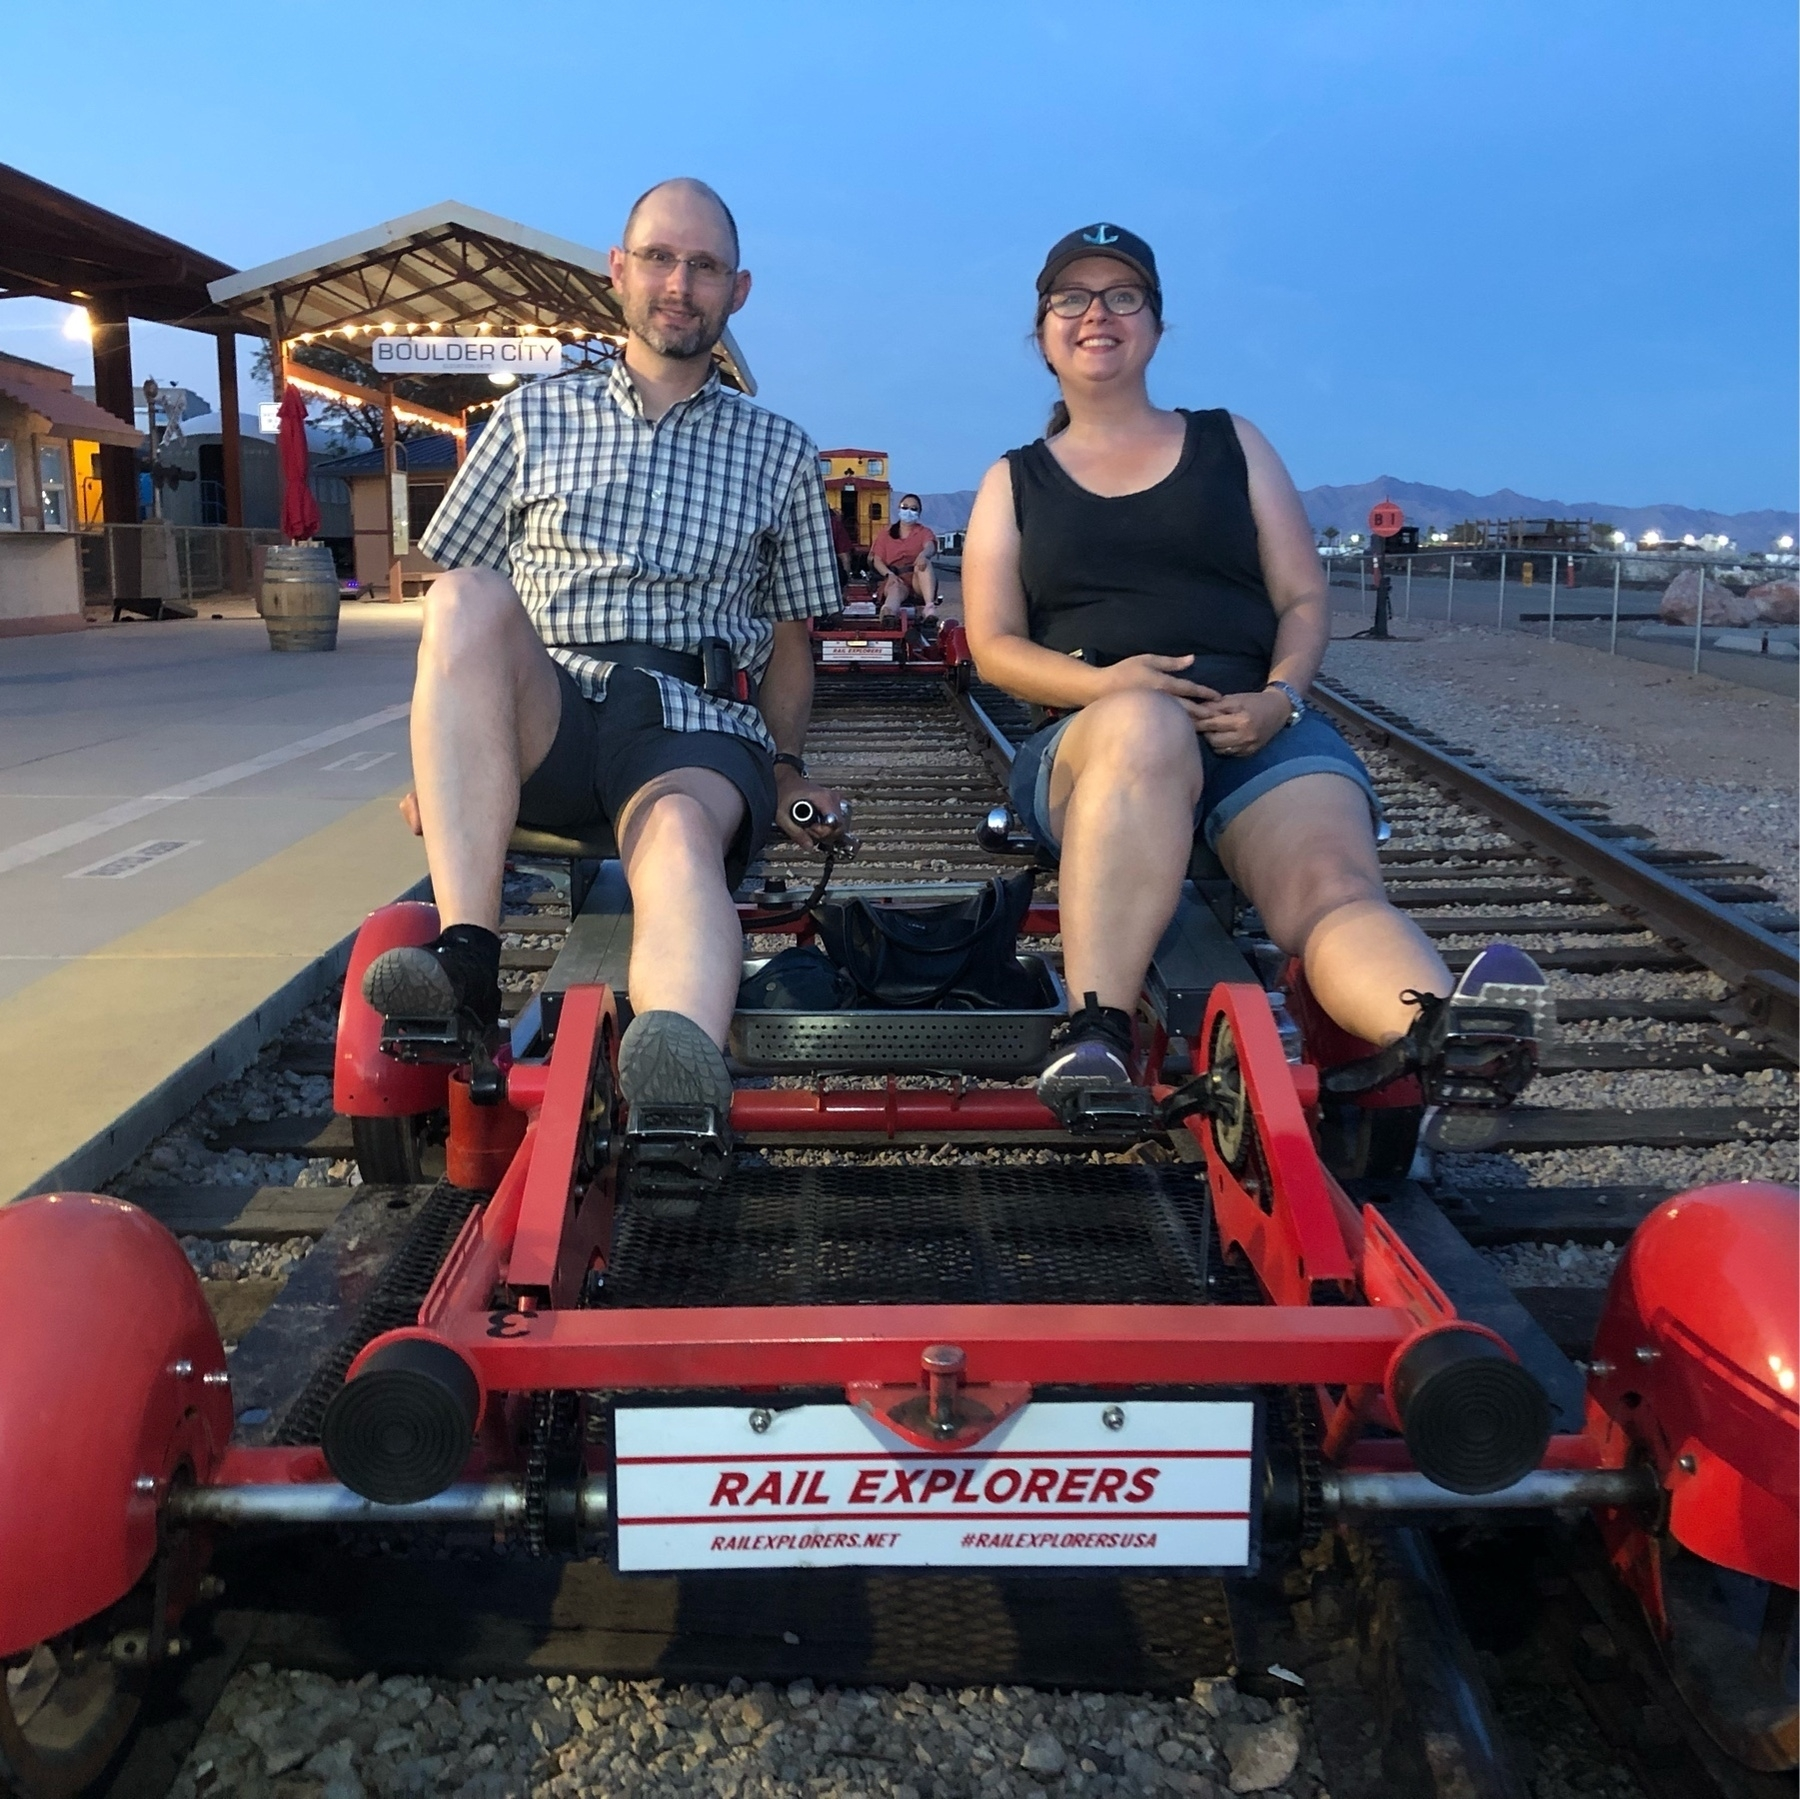 Cheri & P sit on a gocart with pedals that's on a rail road track.